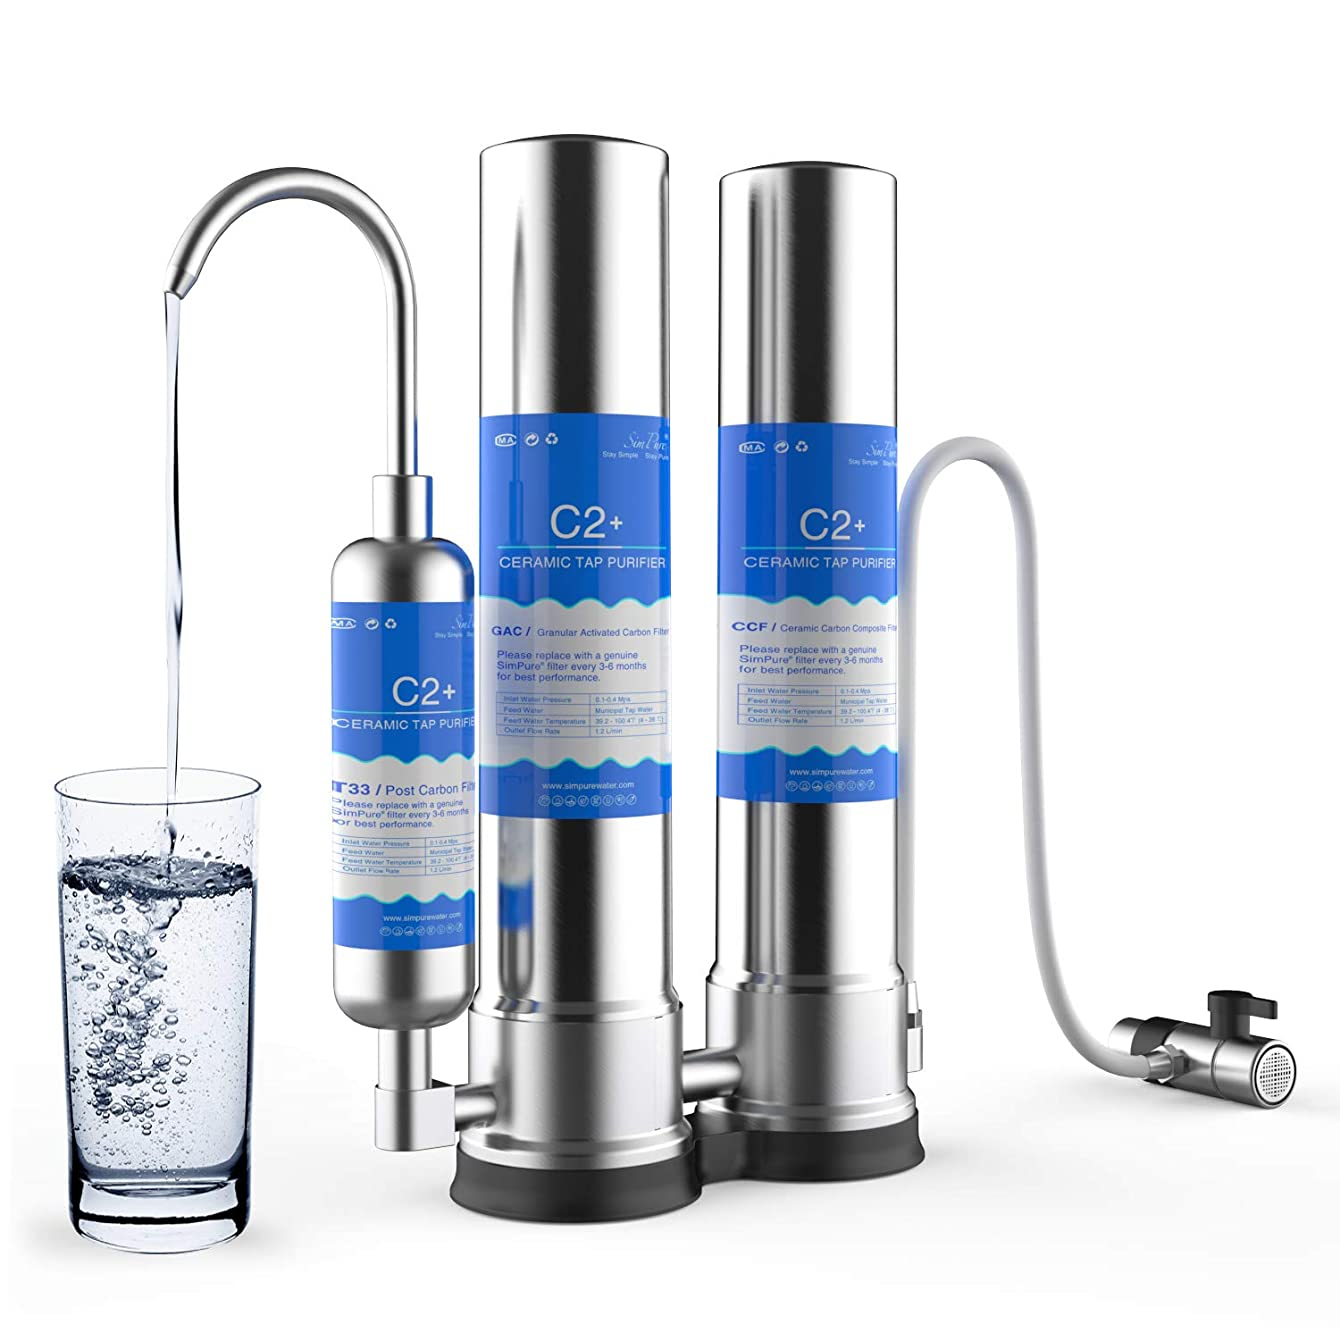 SimPure Countertop Water Filter, Stainless Steel Drinking Water Purifier Filtration System, Built-in CTO Filter,T33 Filter and Ceramic Filter, Perfect for Providing Fresh Pure Water, Easy Installation cjozyfrhxnfbu14